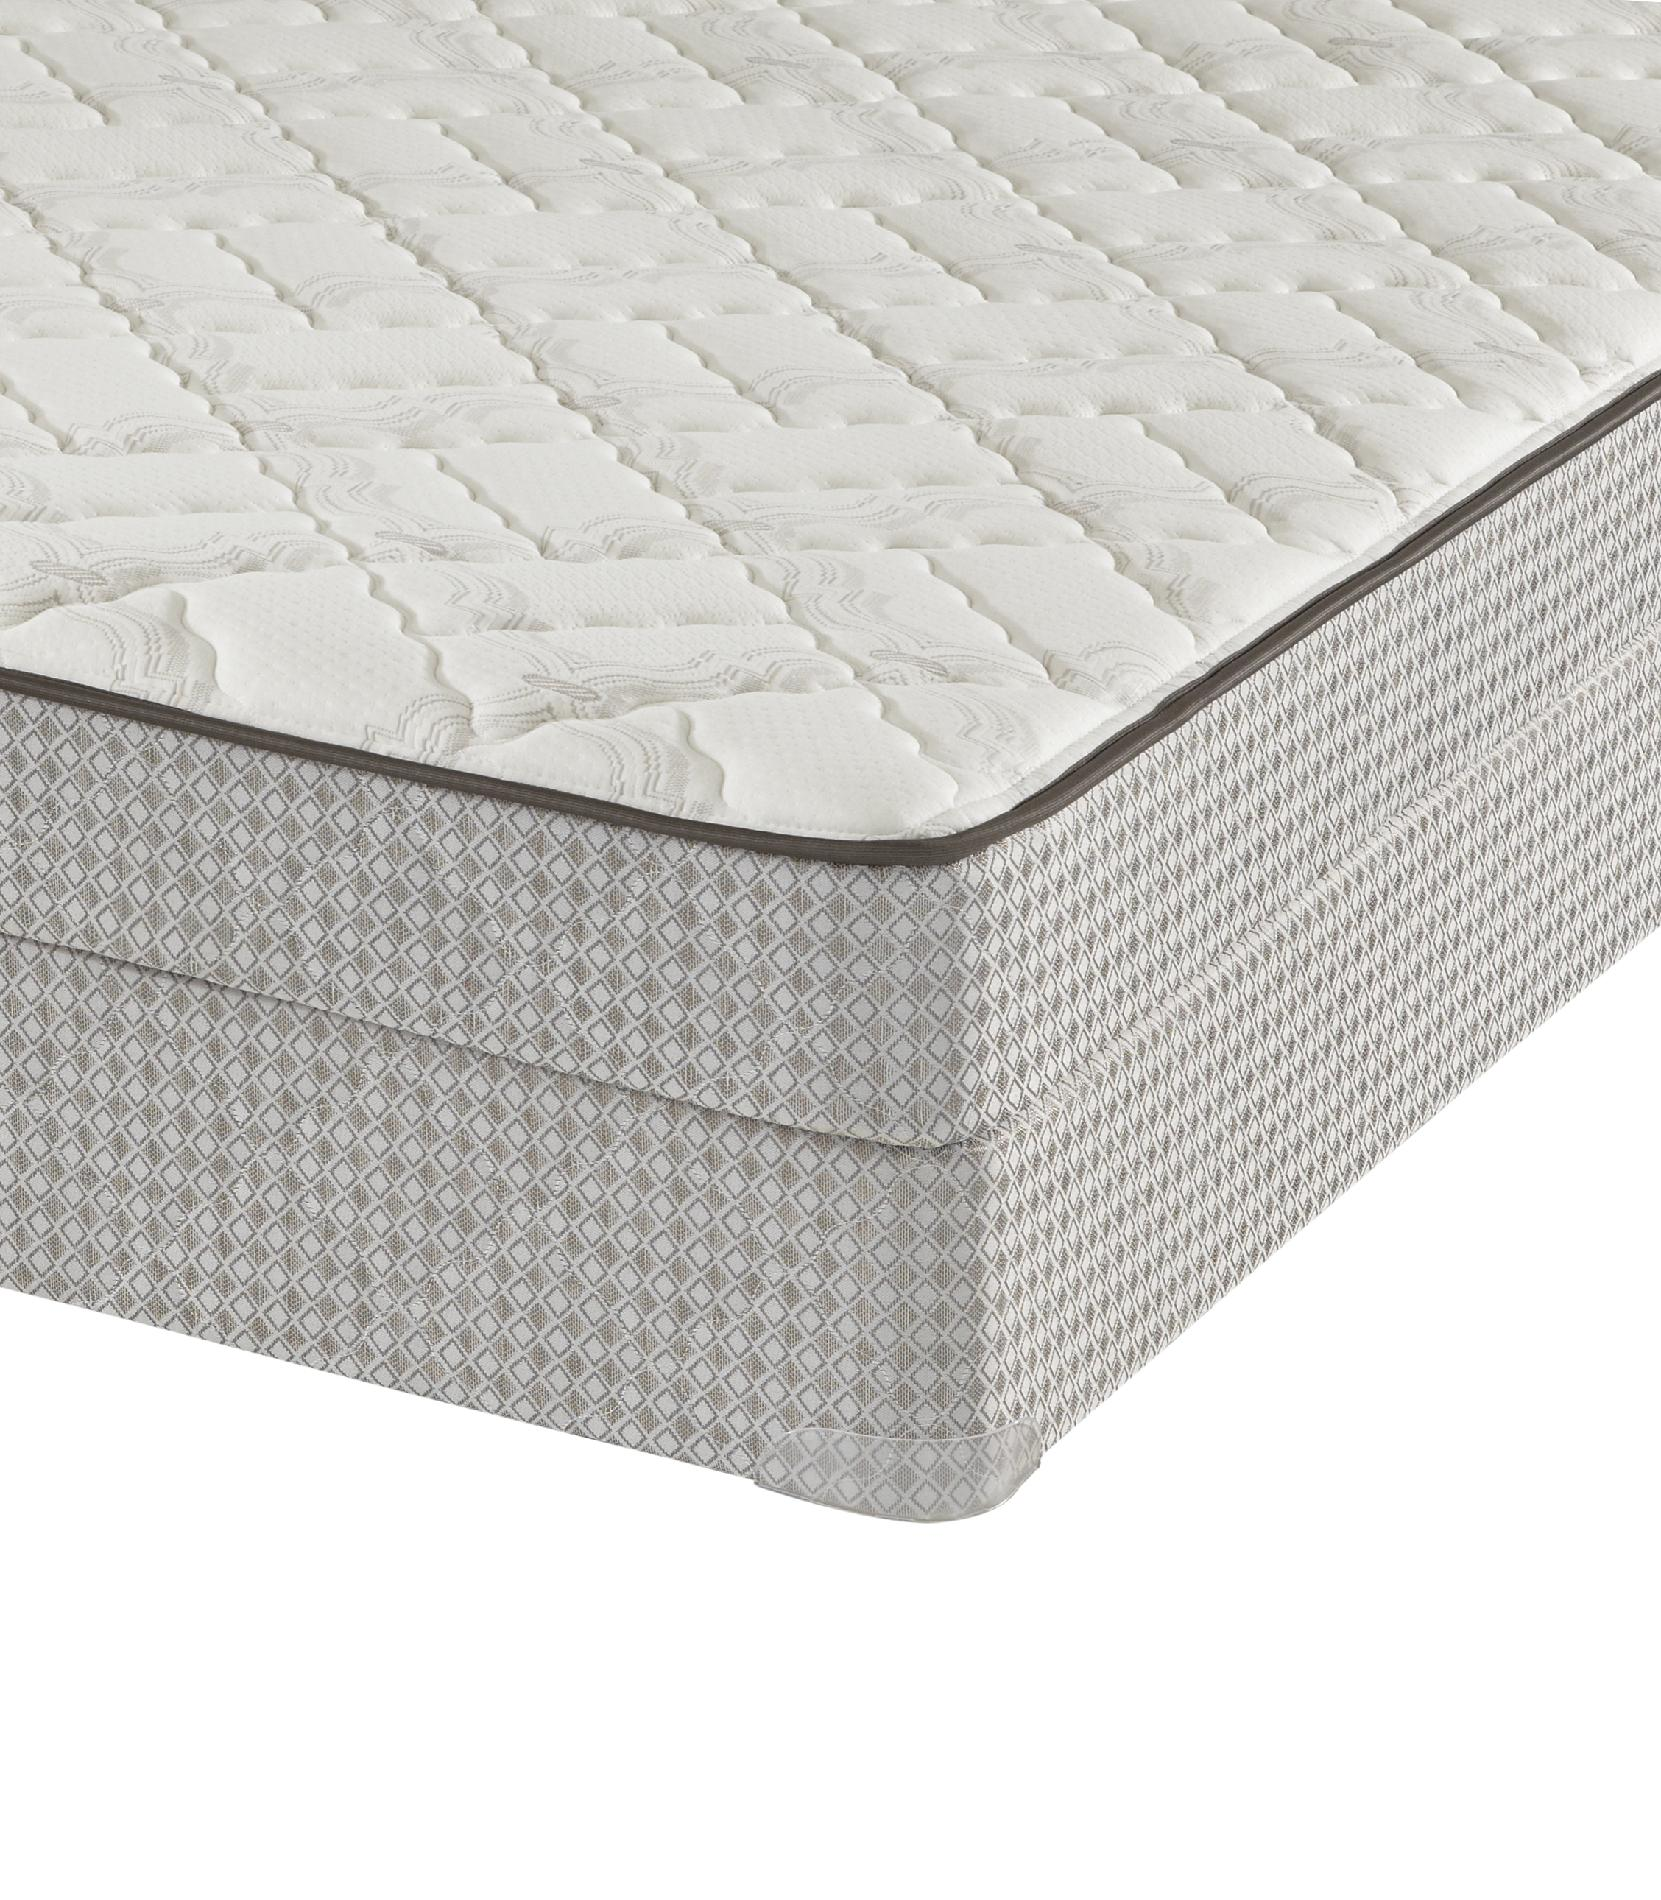 Amalie-Select-Firm-California-King-Mattress-Only